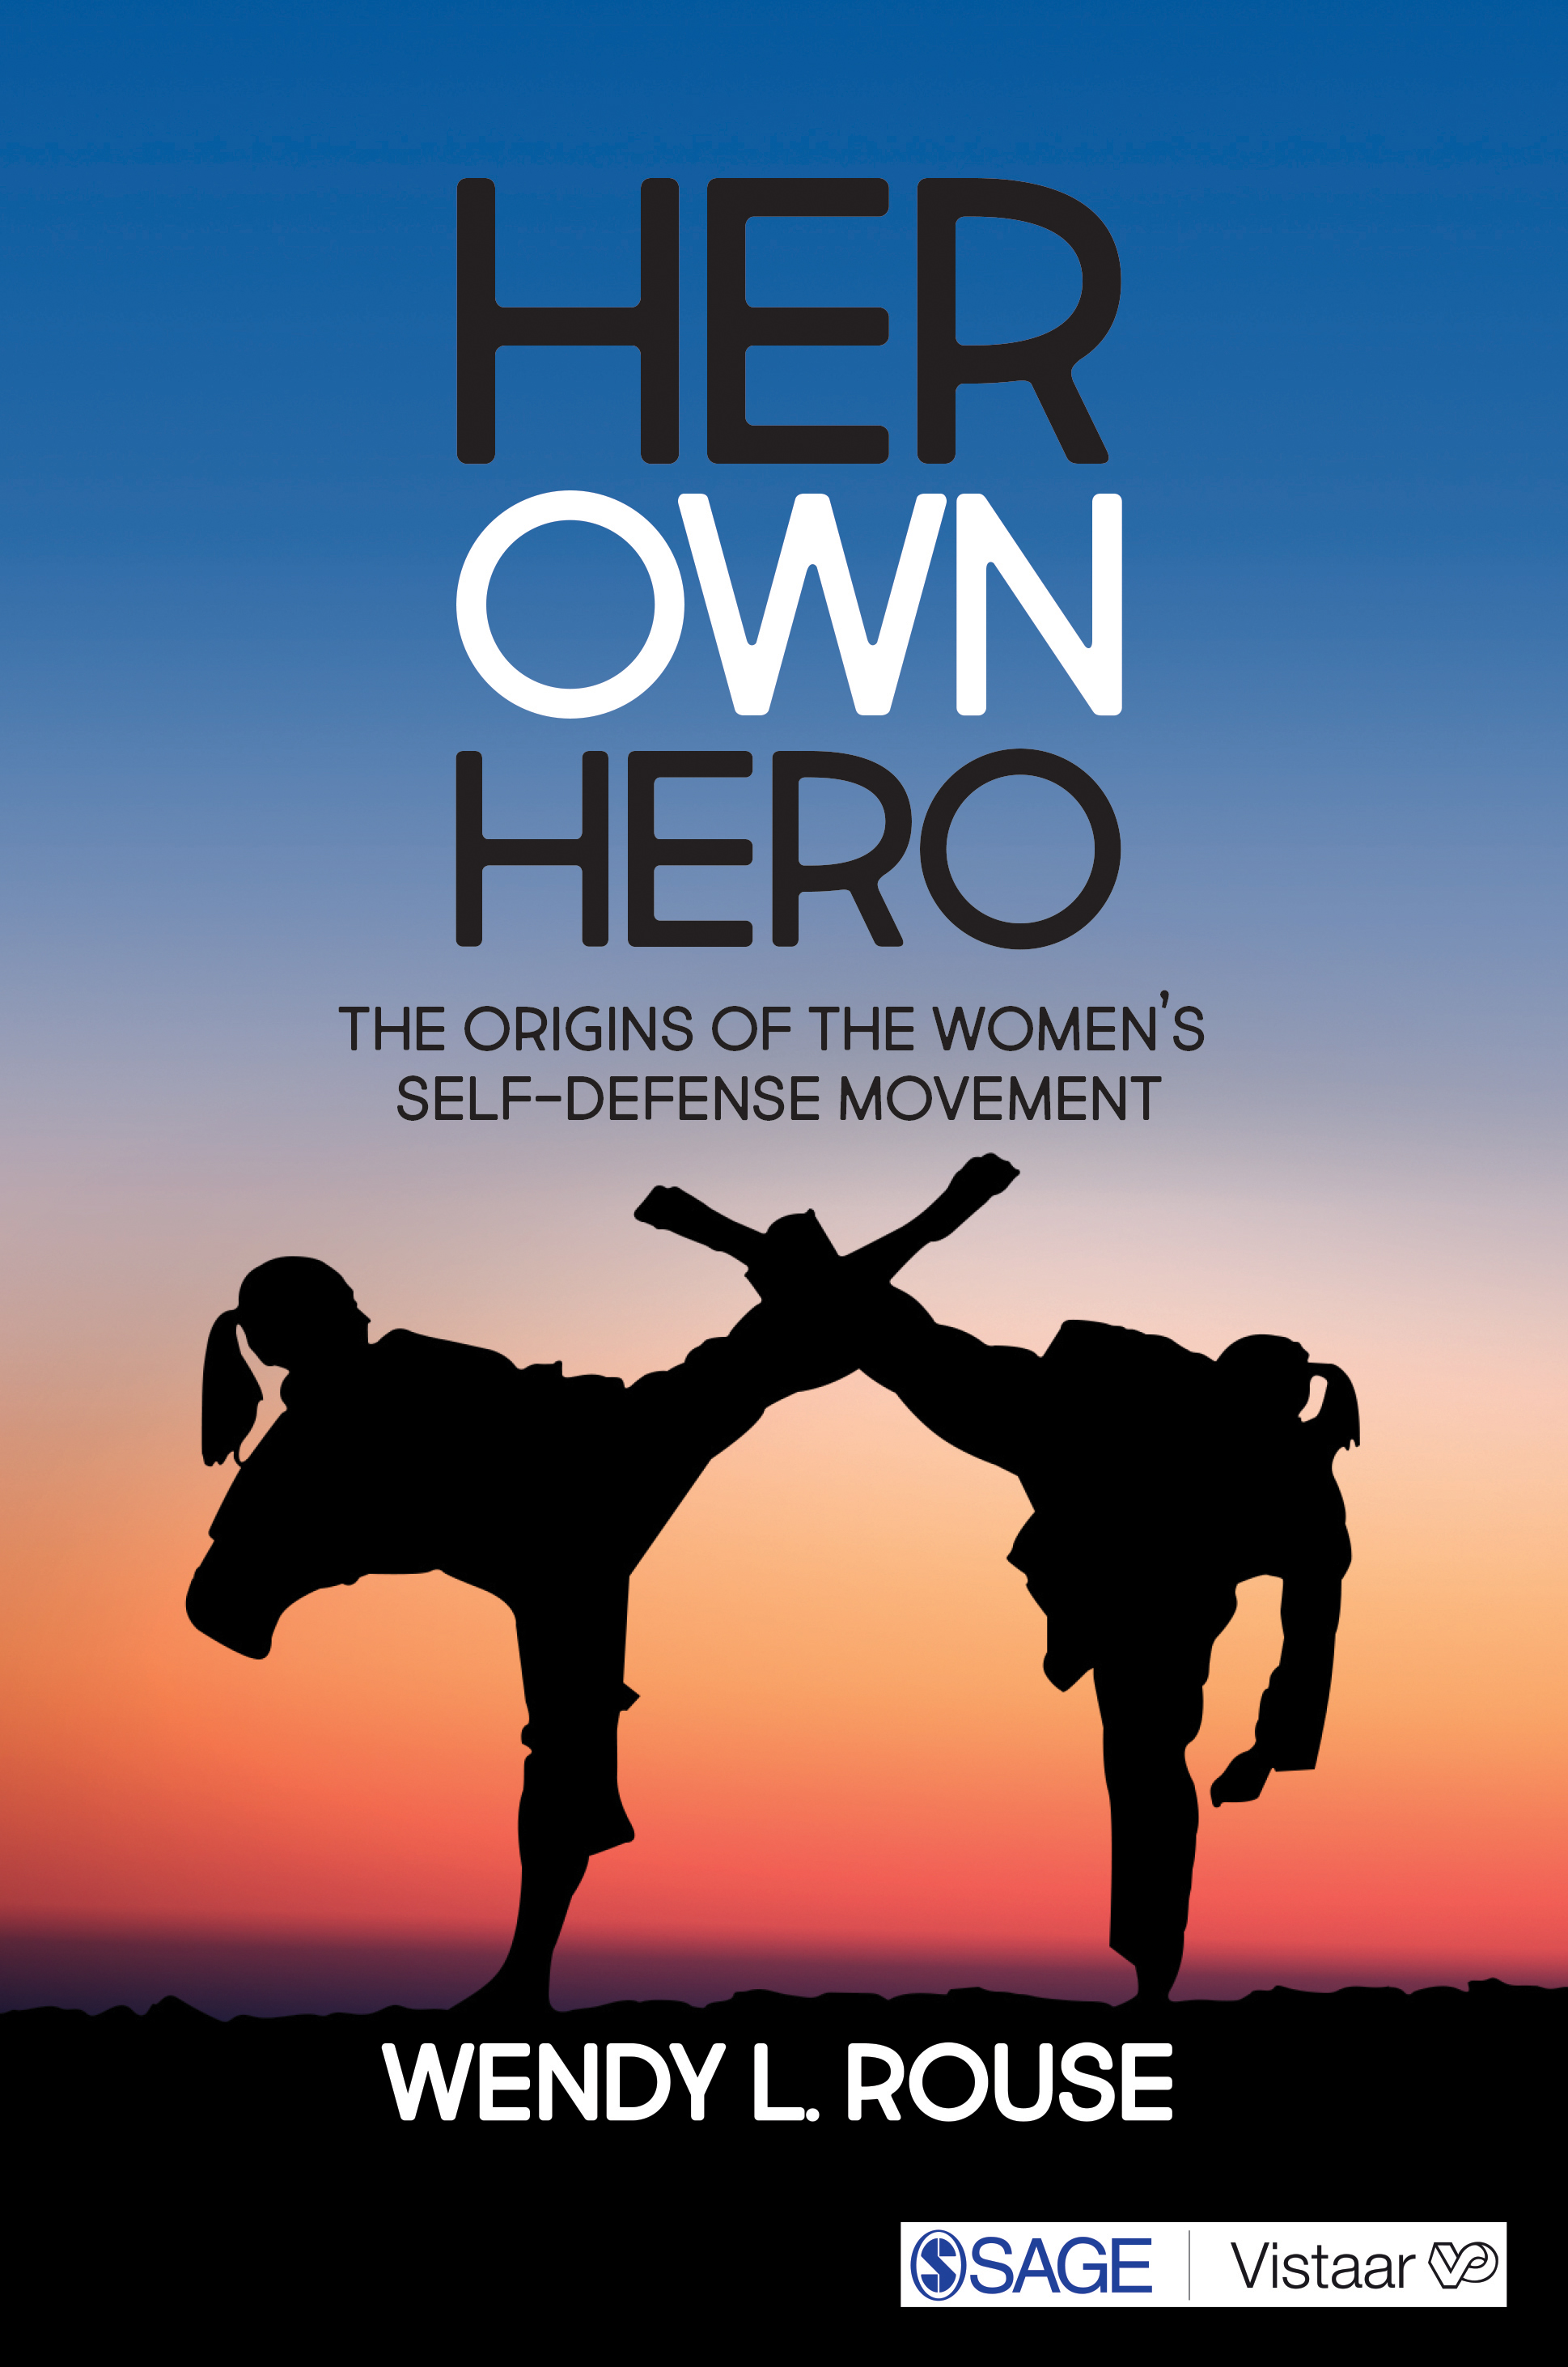 Fighting back: How the women's self-defence movement